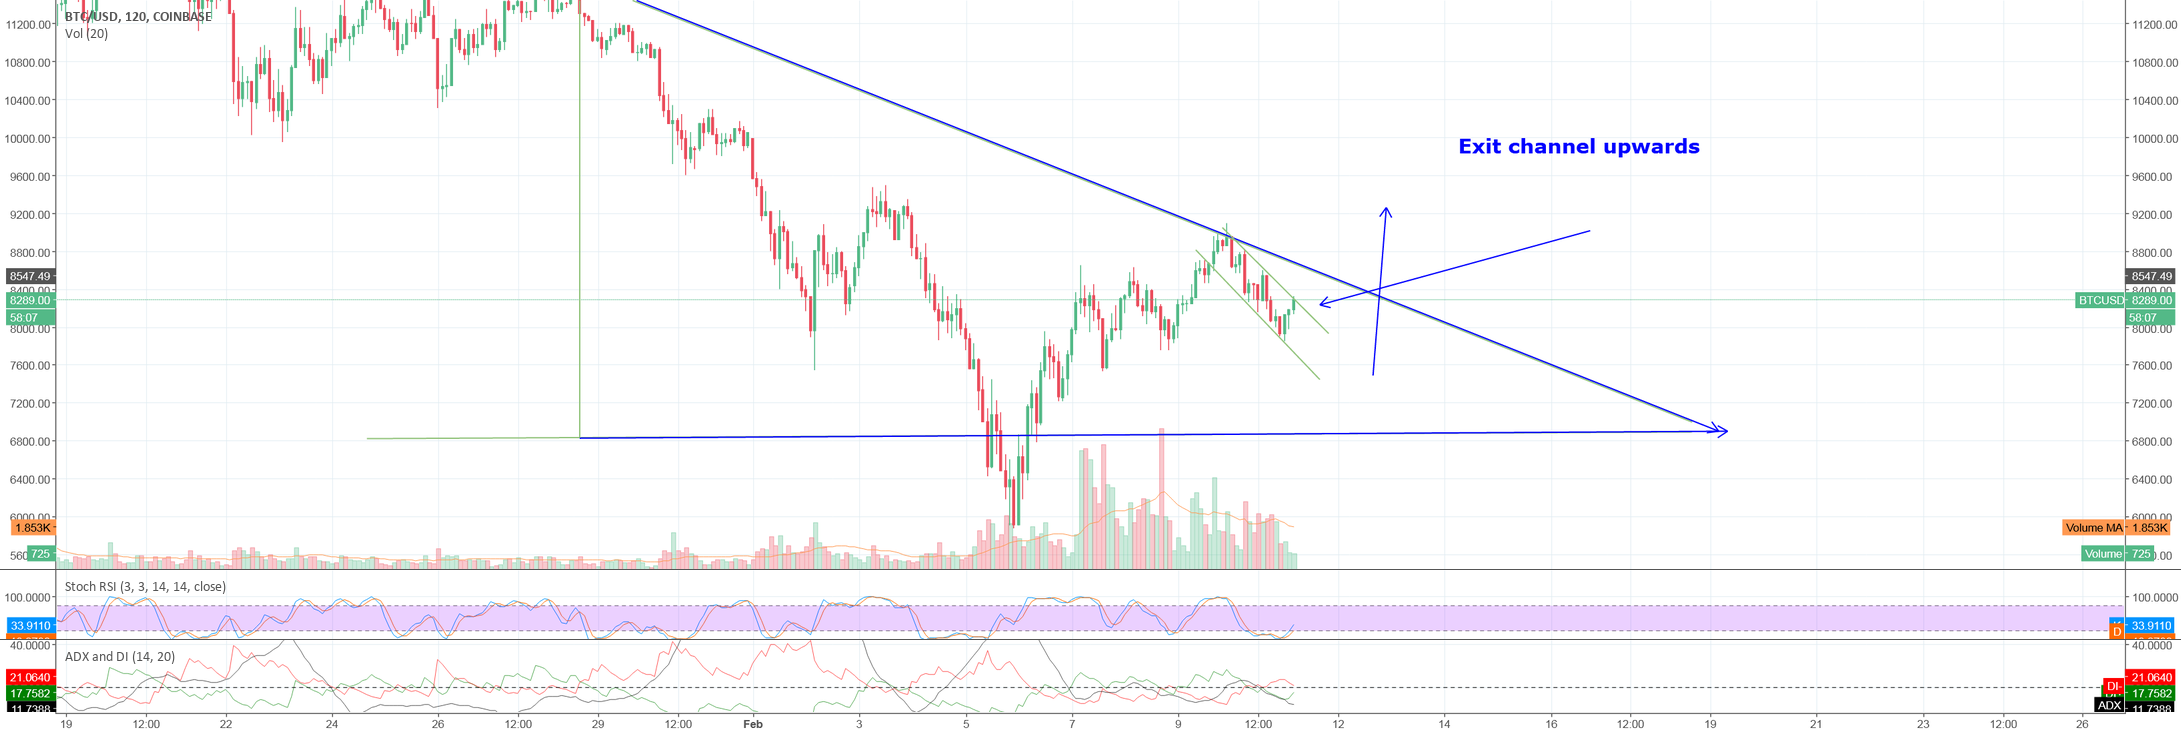 BTC needs to exit the channel and move upwards